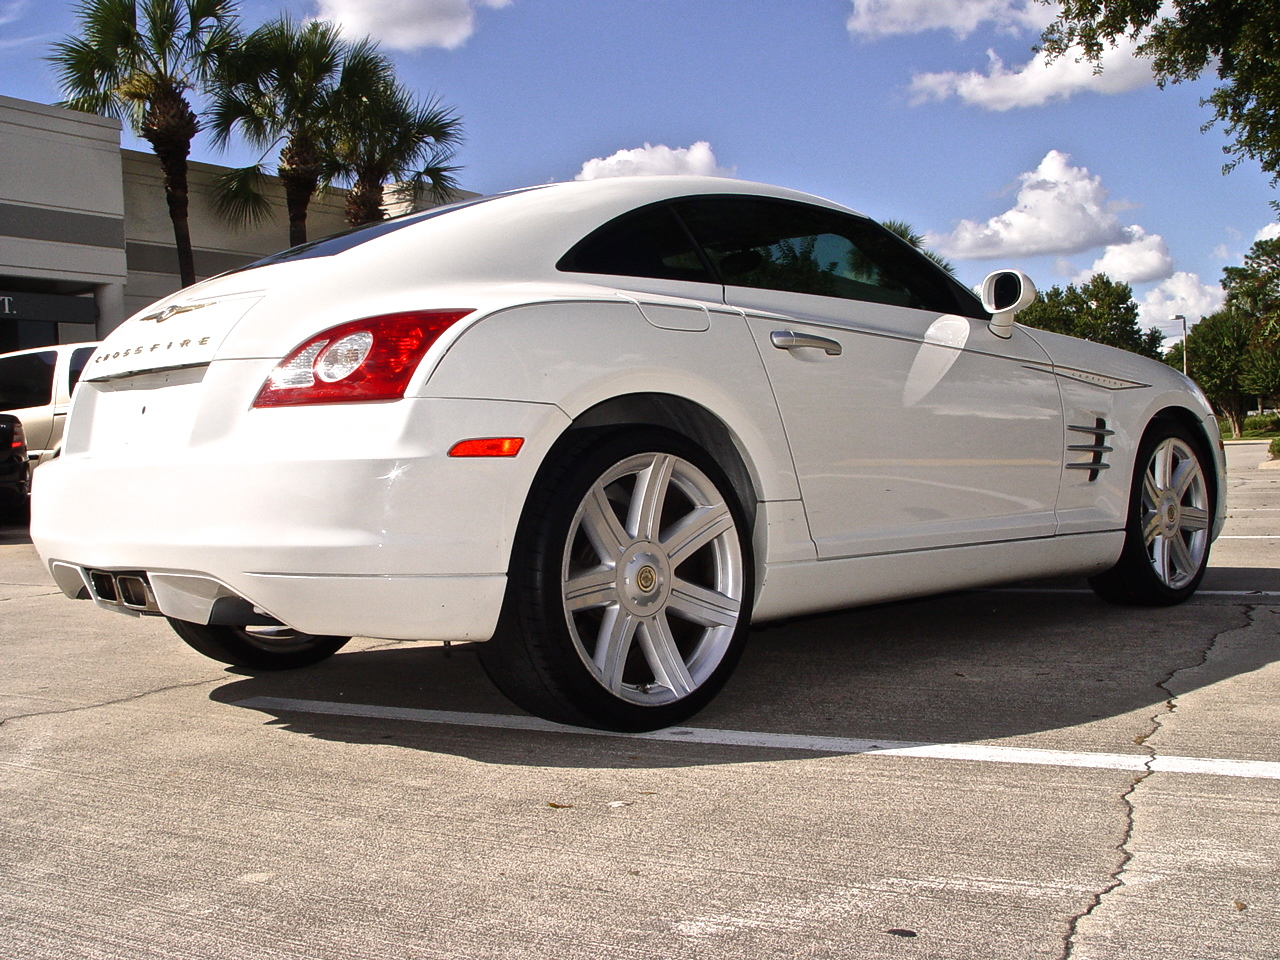 chrysler crossfire reviews research new used models caroldoey. Cars Review. Best American Auto & Cars Review